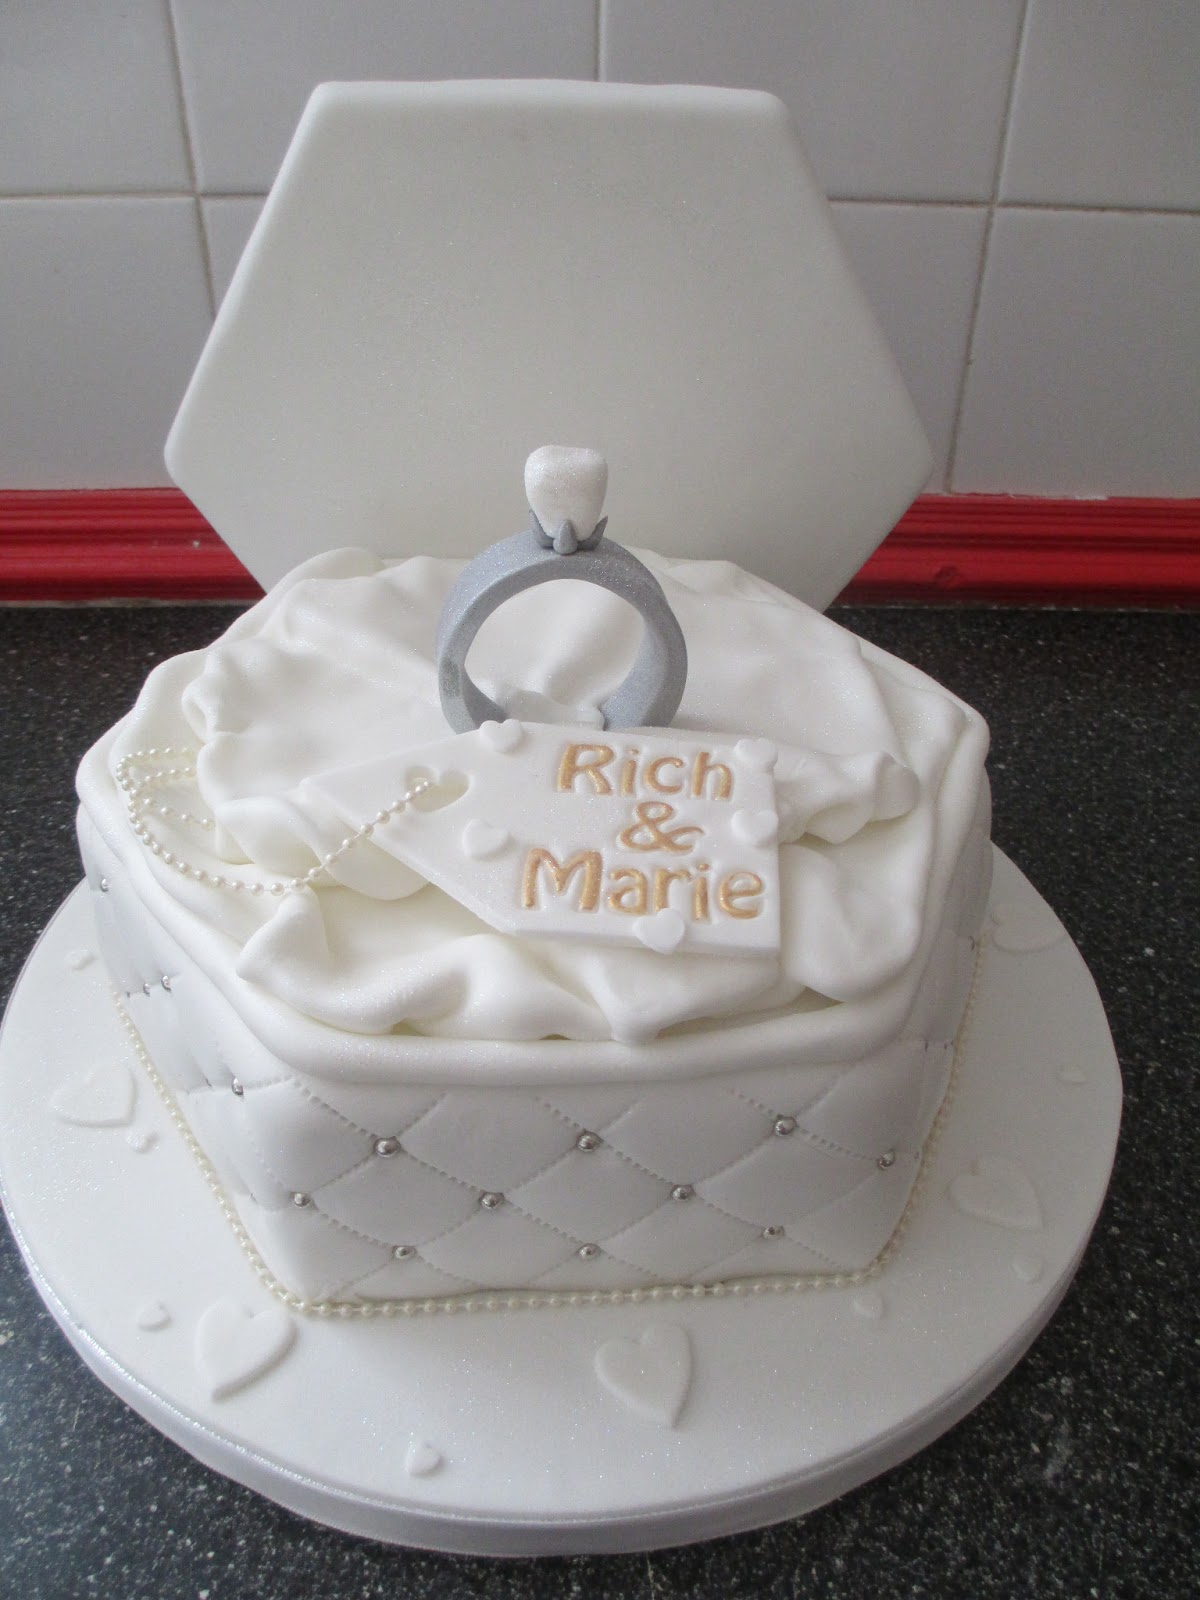 Engagement Ring Box Cakes submited images